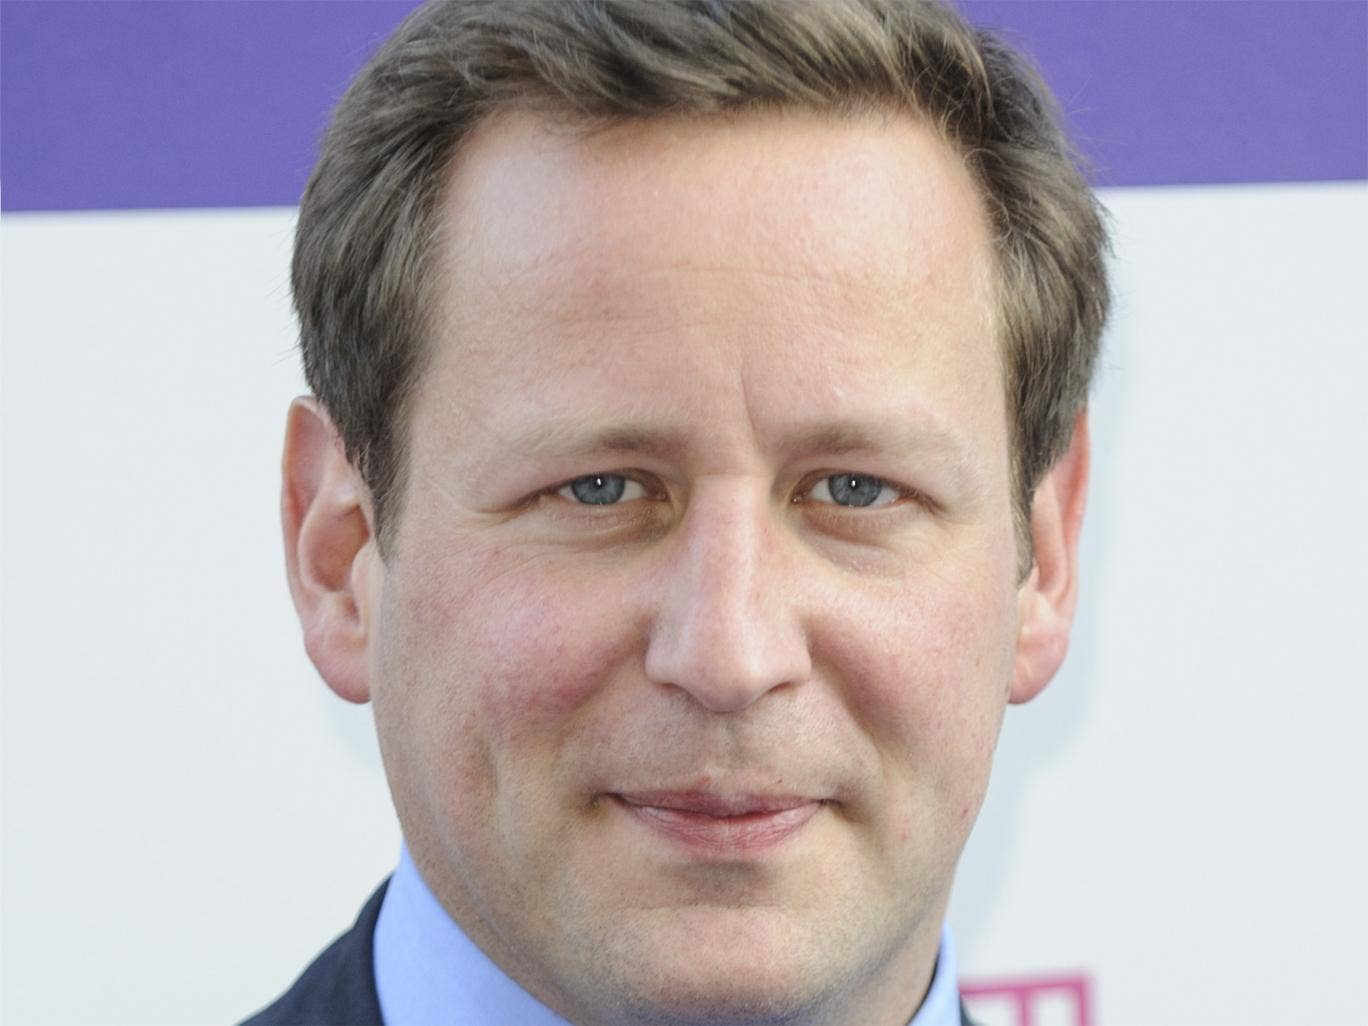 Ed Vaizey said broadcasters are cutting themselves off from a huge range of talent